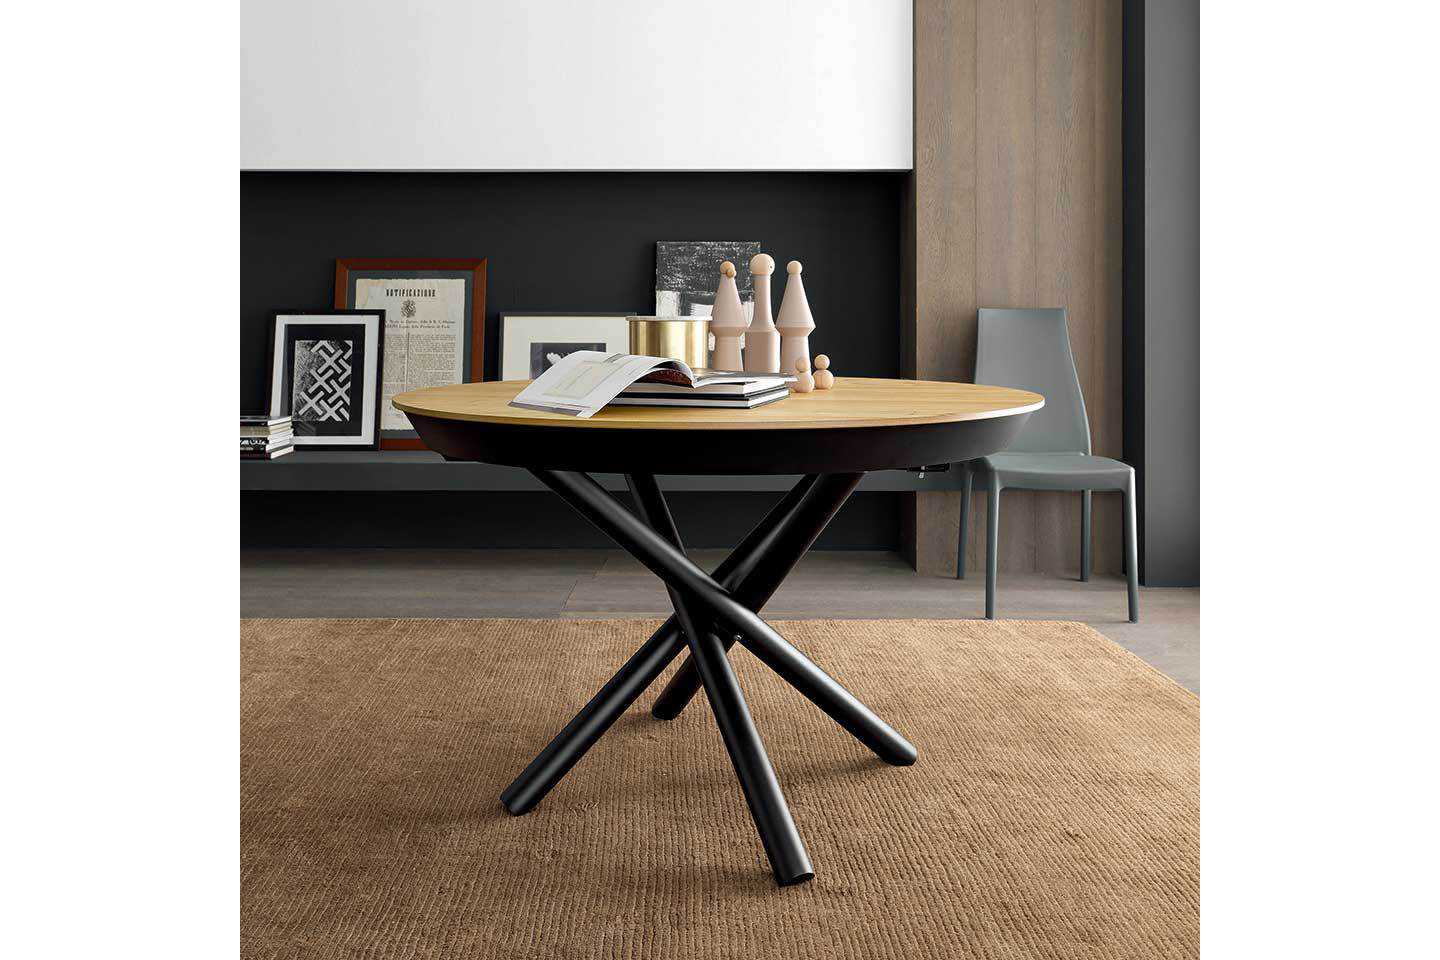 Mobili Italia_ALTACOM FAHRENHEIT ROUND extension table